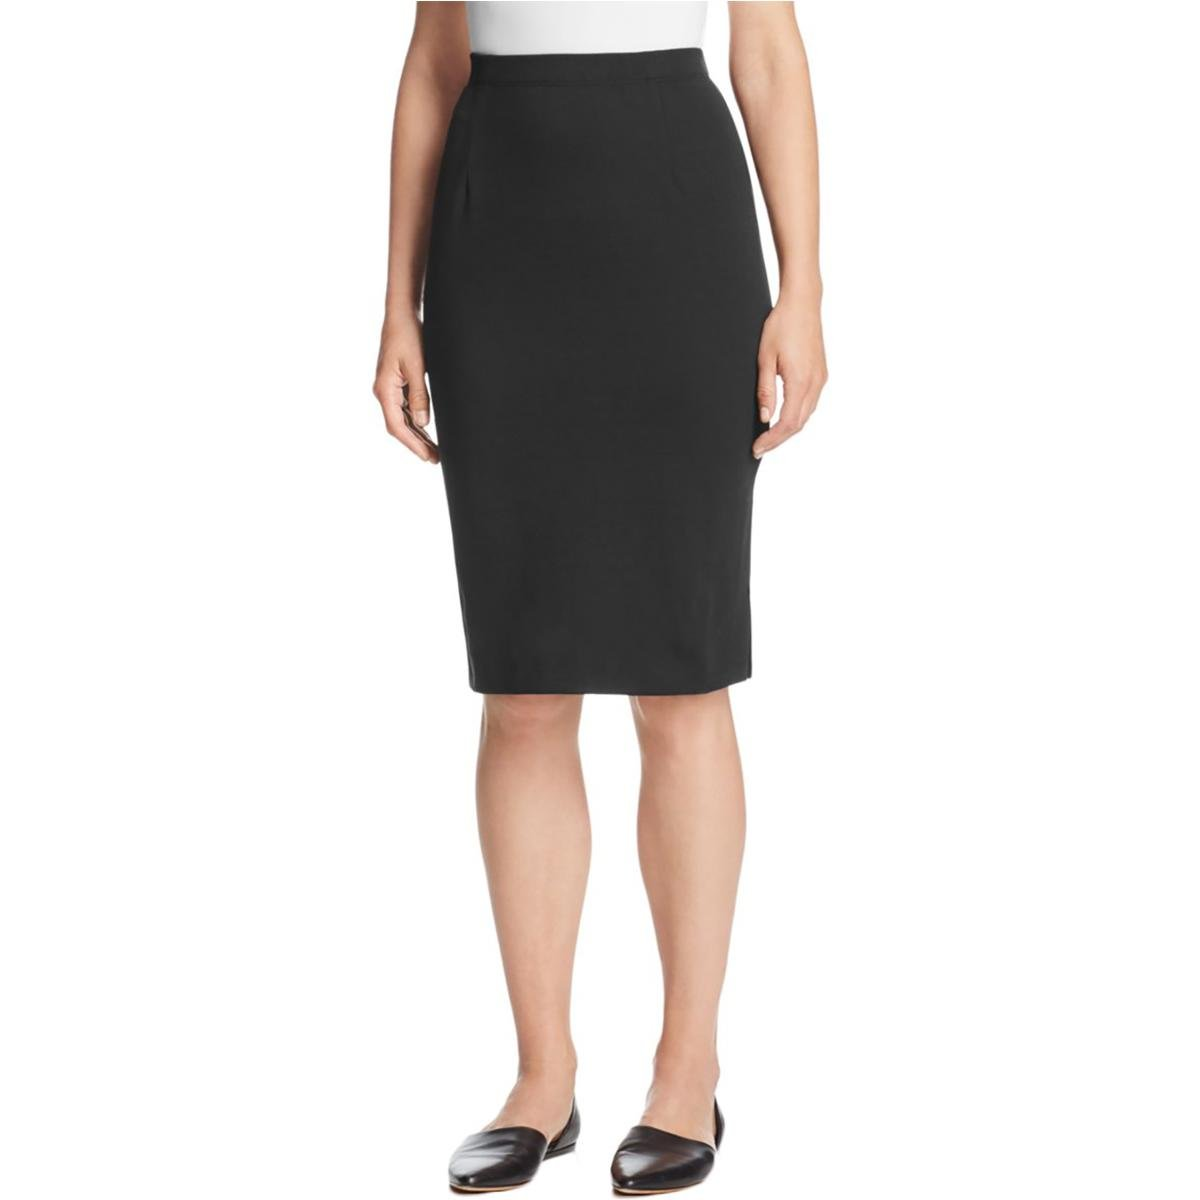 Eileen Fisher Womens Petites Knee Length Elastic Pencil Skirt Black PP by Eileen Fisher